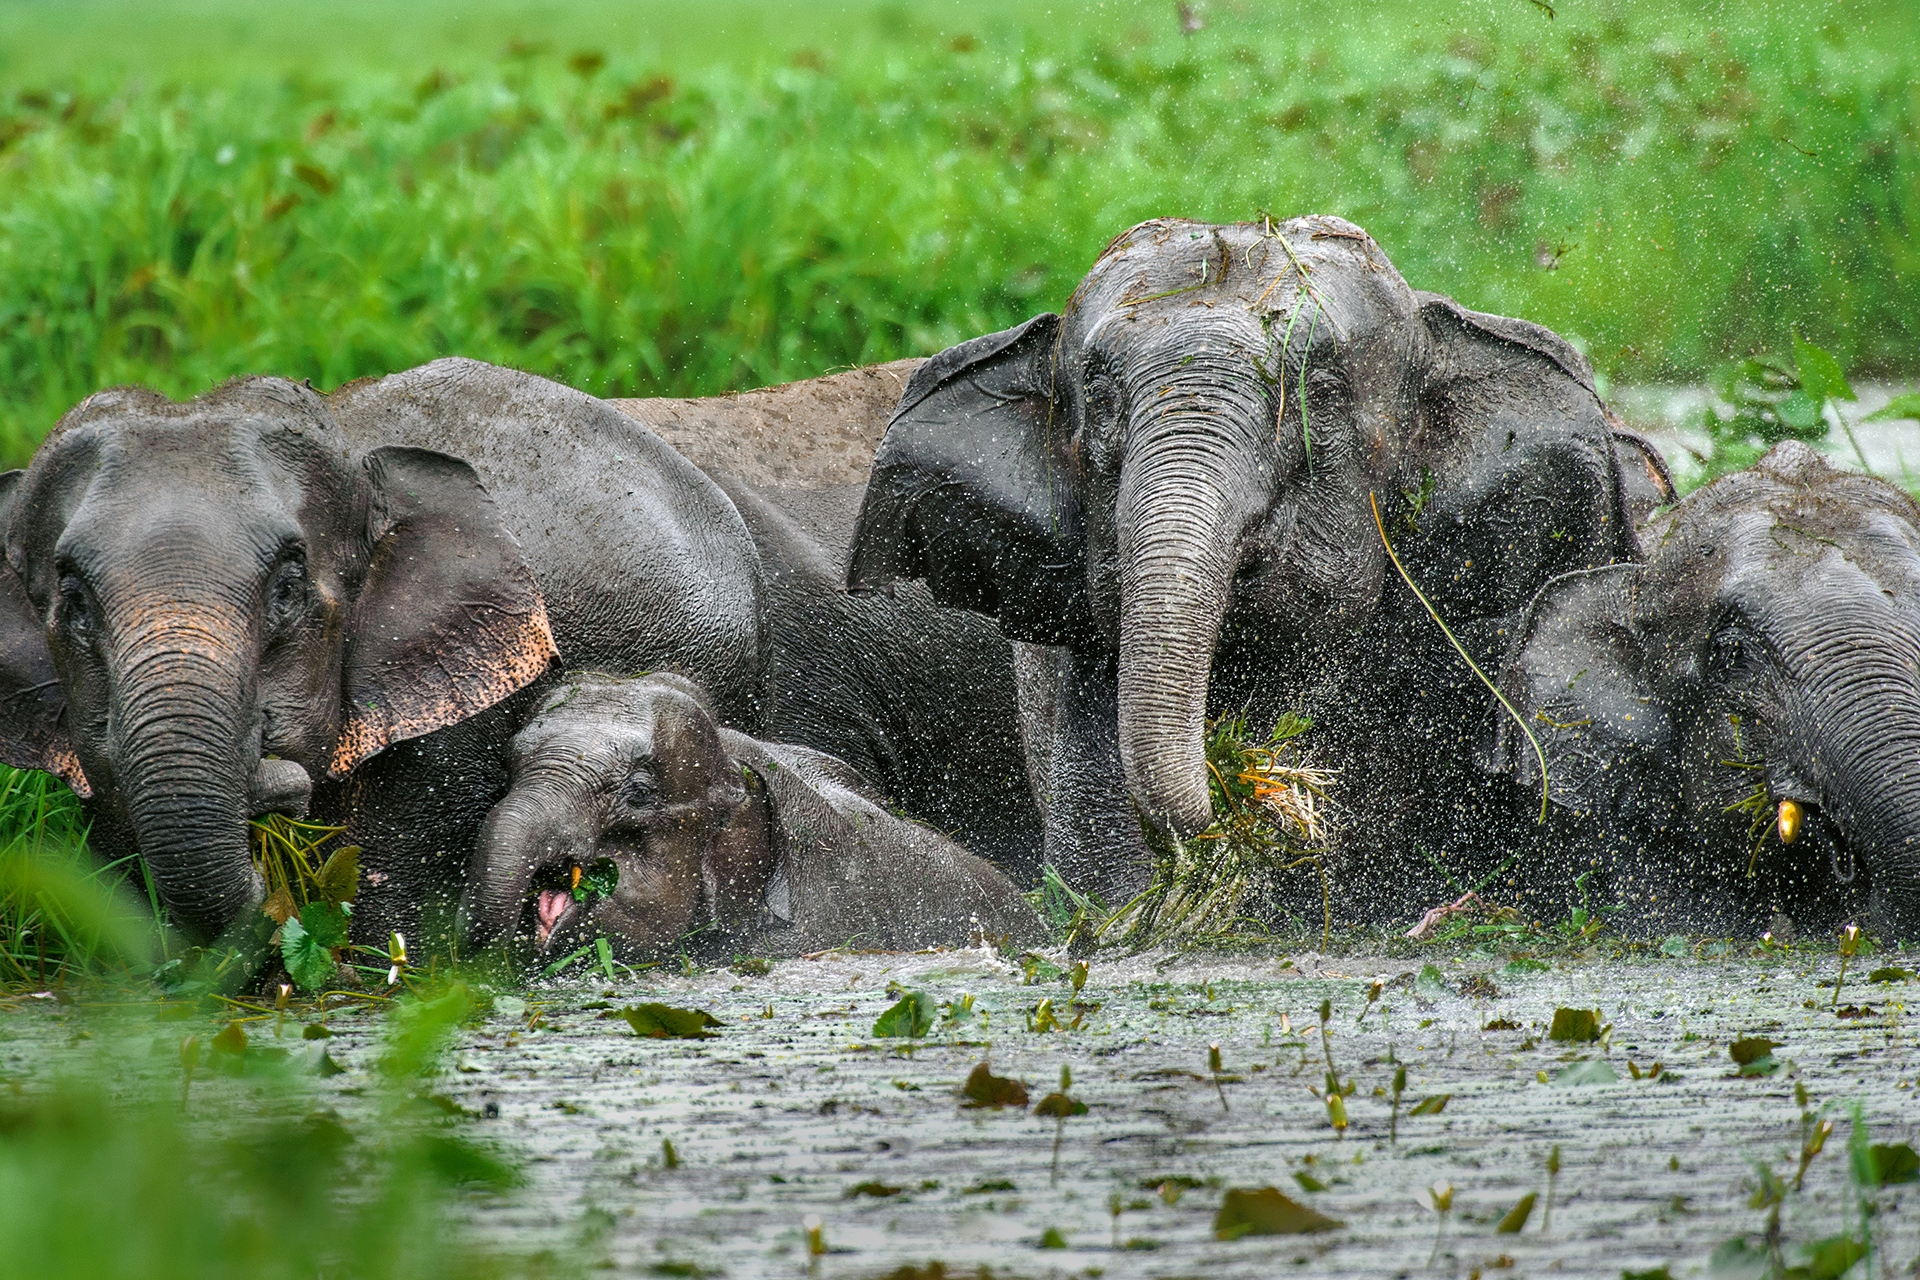 Doboka Beel on the outskirts of Guwahati was a feeding ground for elephants until the area was allotted to the armed forces which has restricted the movement of elephants. Photo: Udayan Borthakur